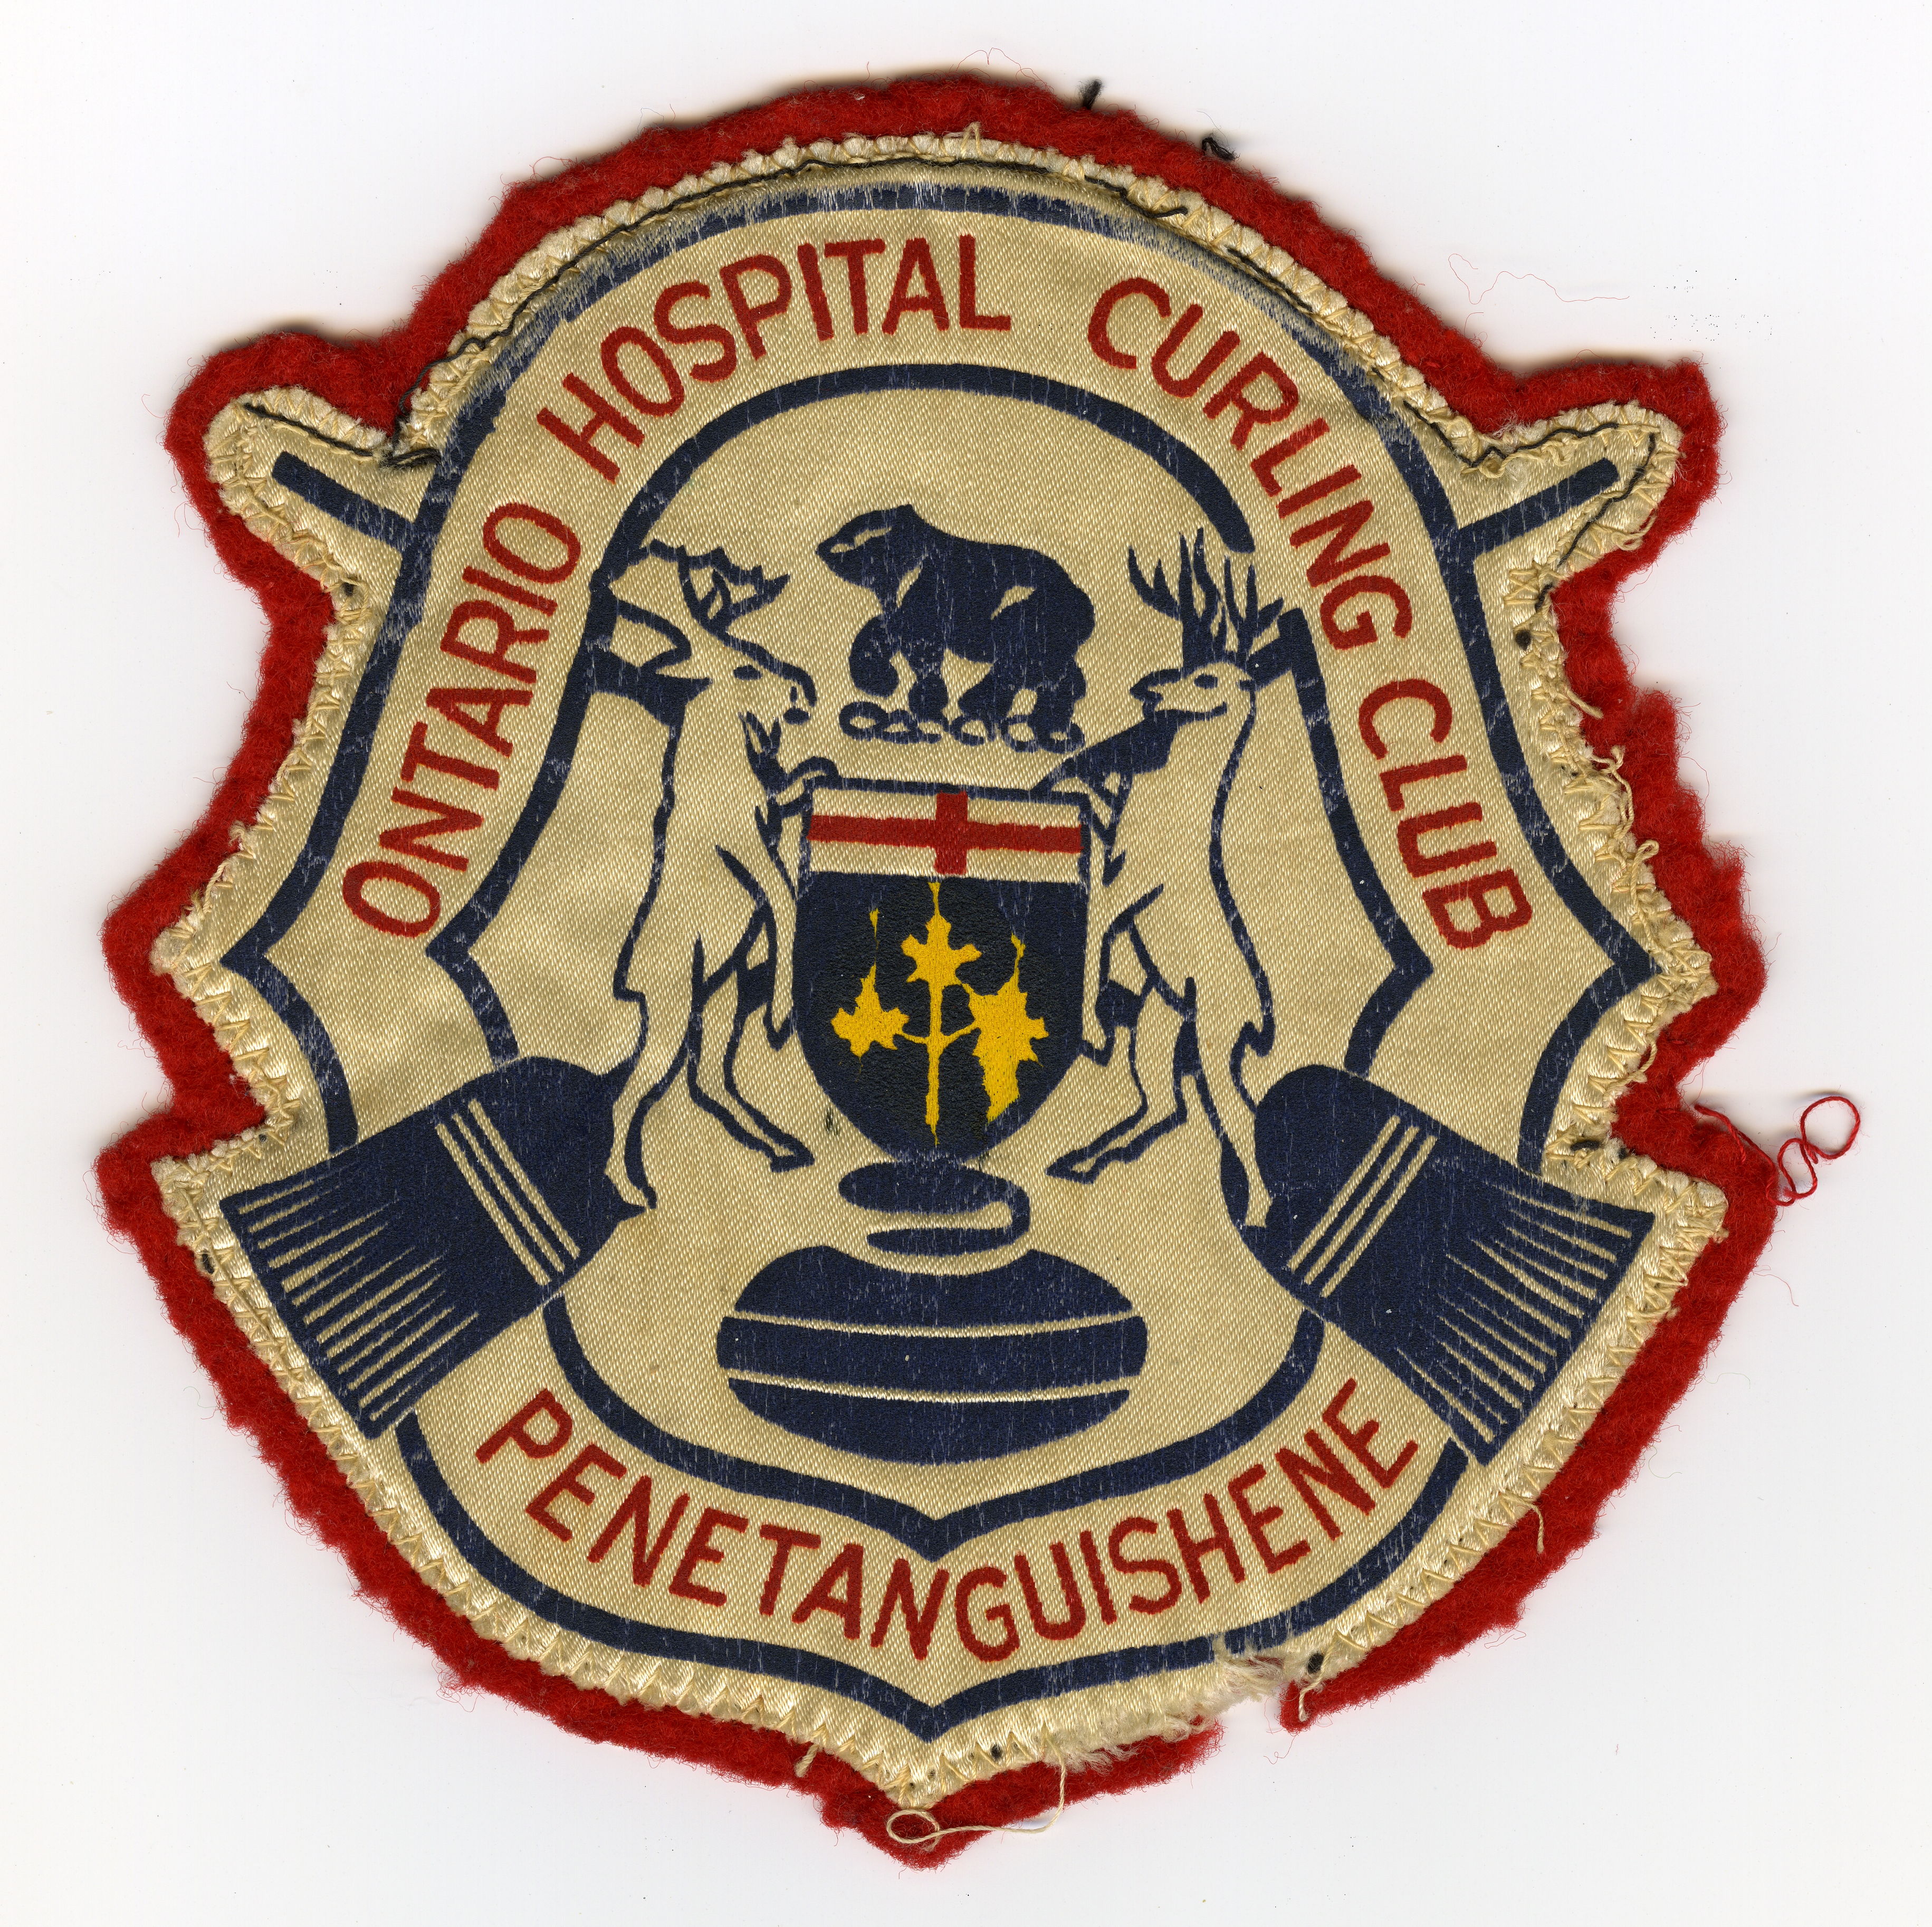 Ontario Hospital Curling Club Penetanguishene patch